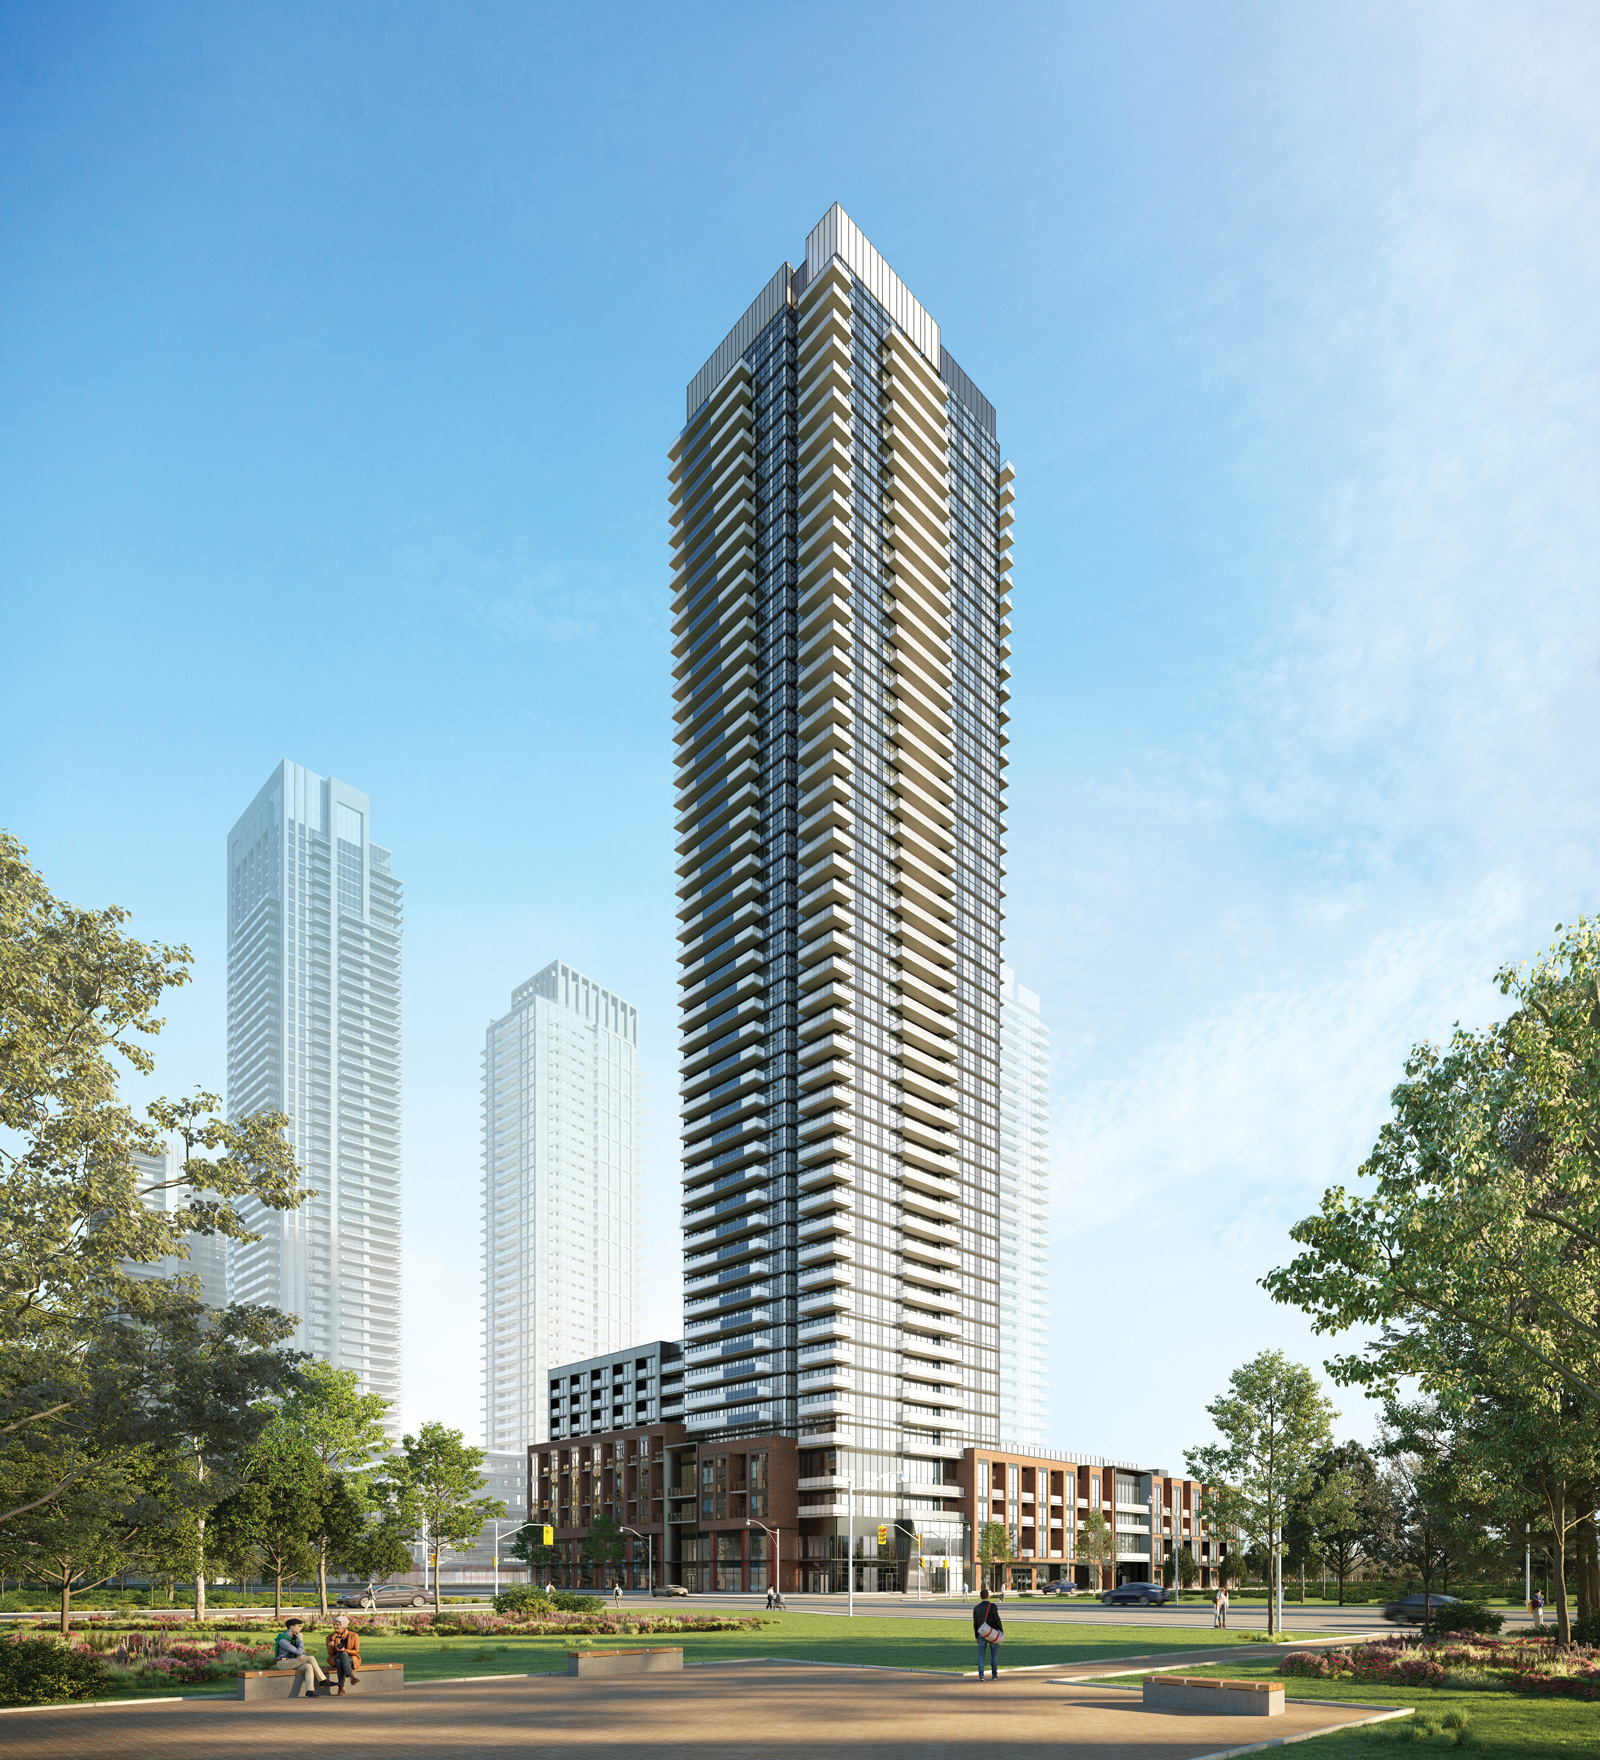 VIP Sales now on for AVIA 2 condos Square One Mississauga, Ontario Canada